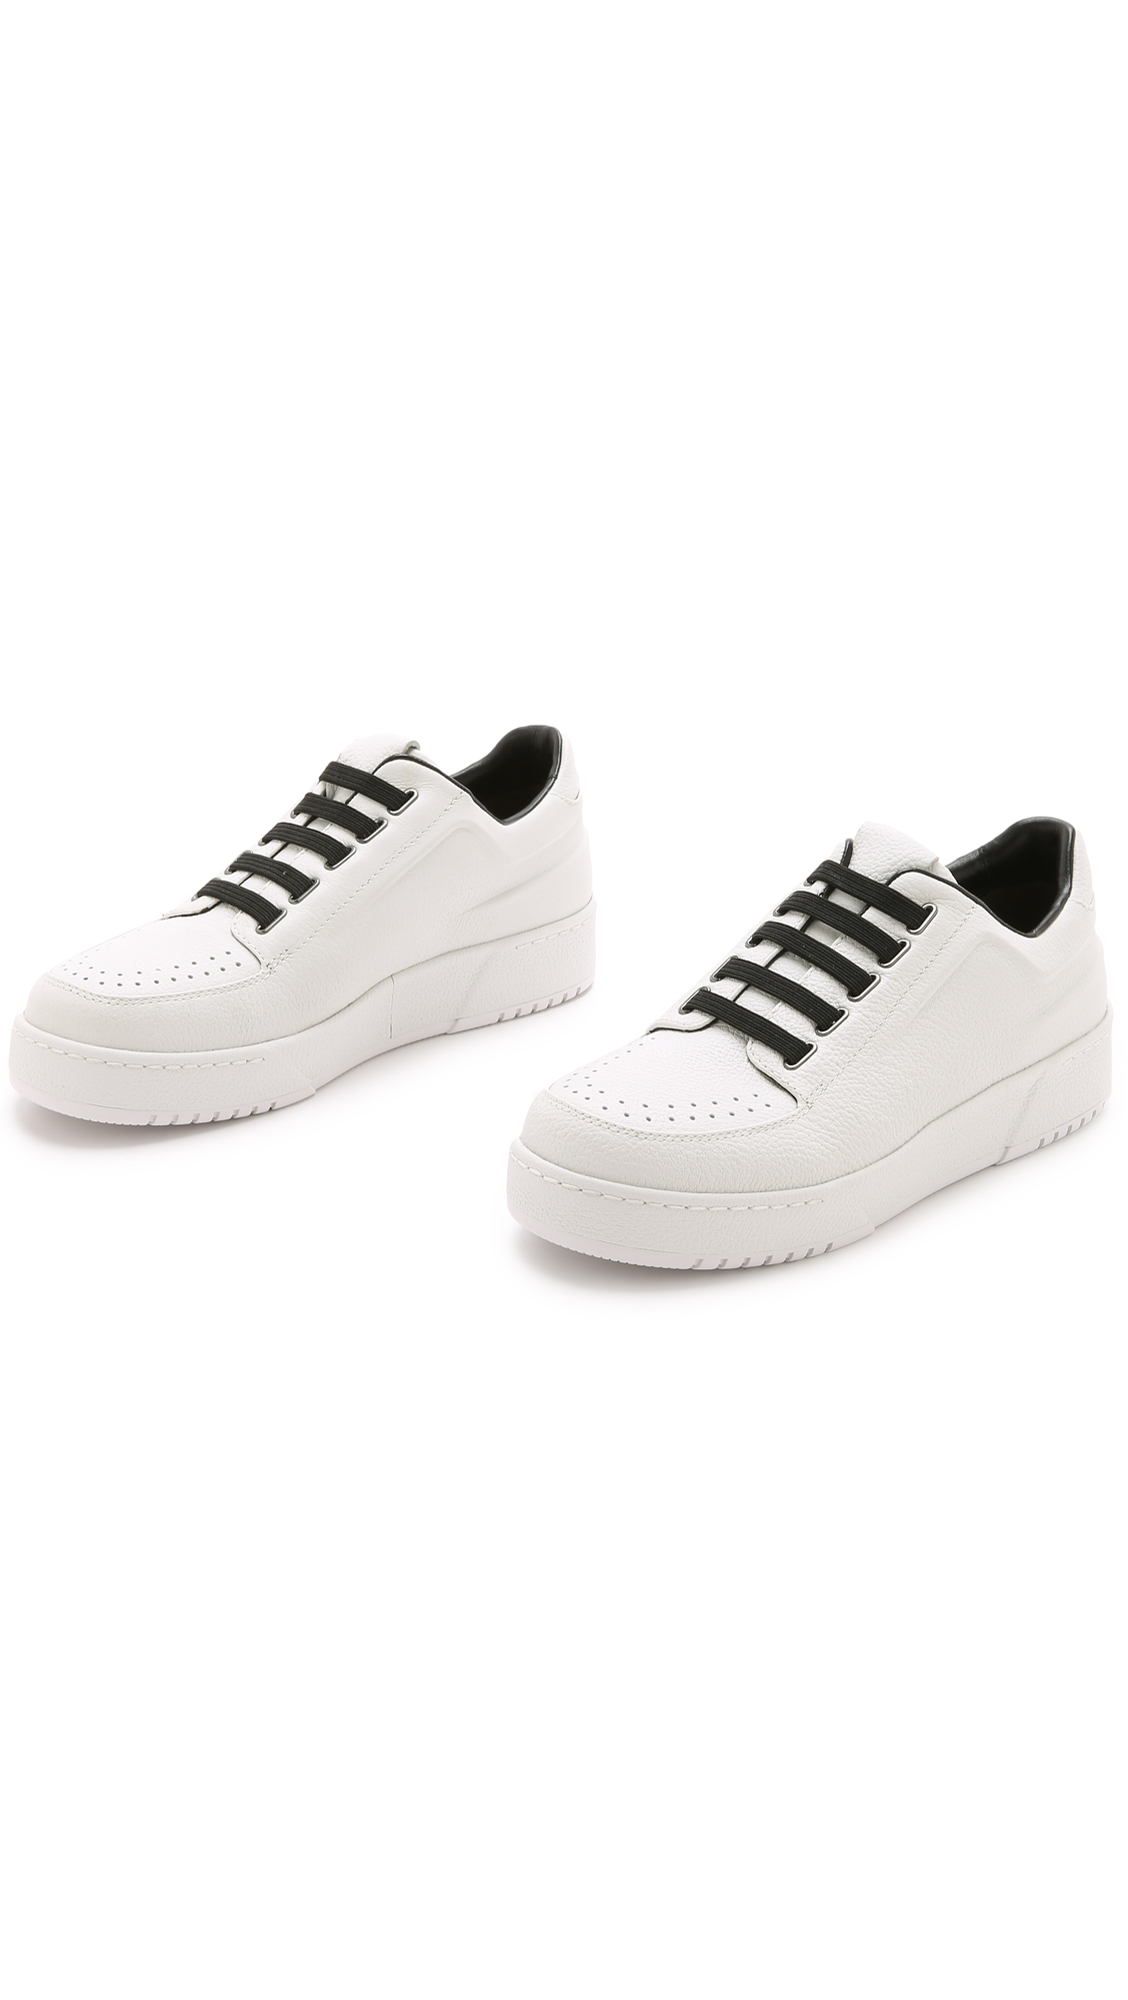 100% Guaranteed Cheap Price Fashion Style Sale Online Pre-owned - Leather low trainers 3.1 Phillip Lim 7dLjPAt